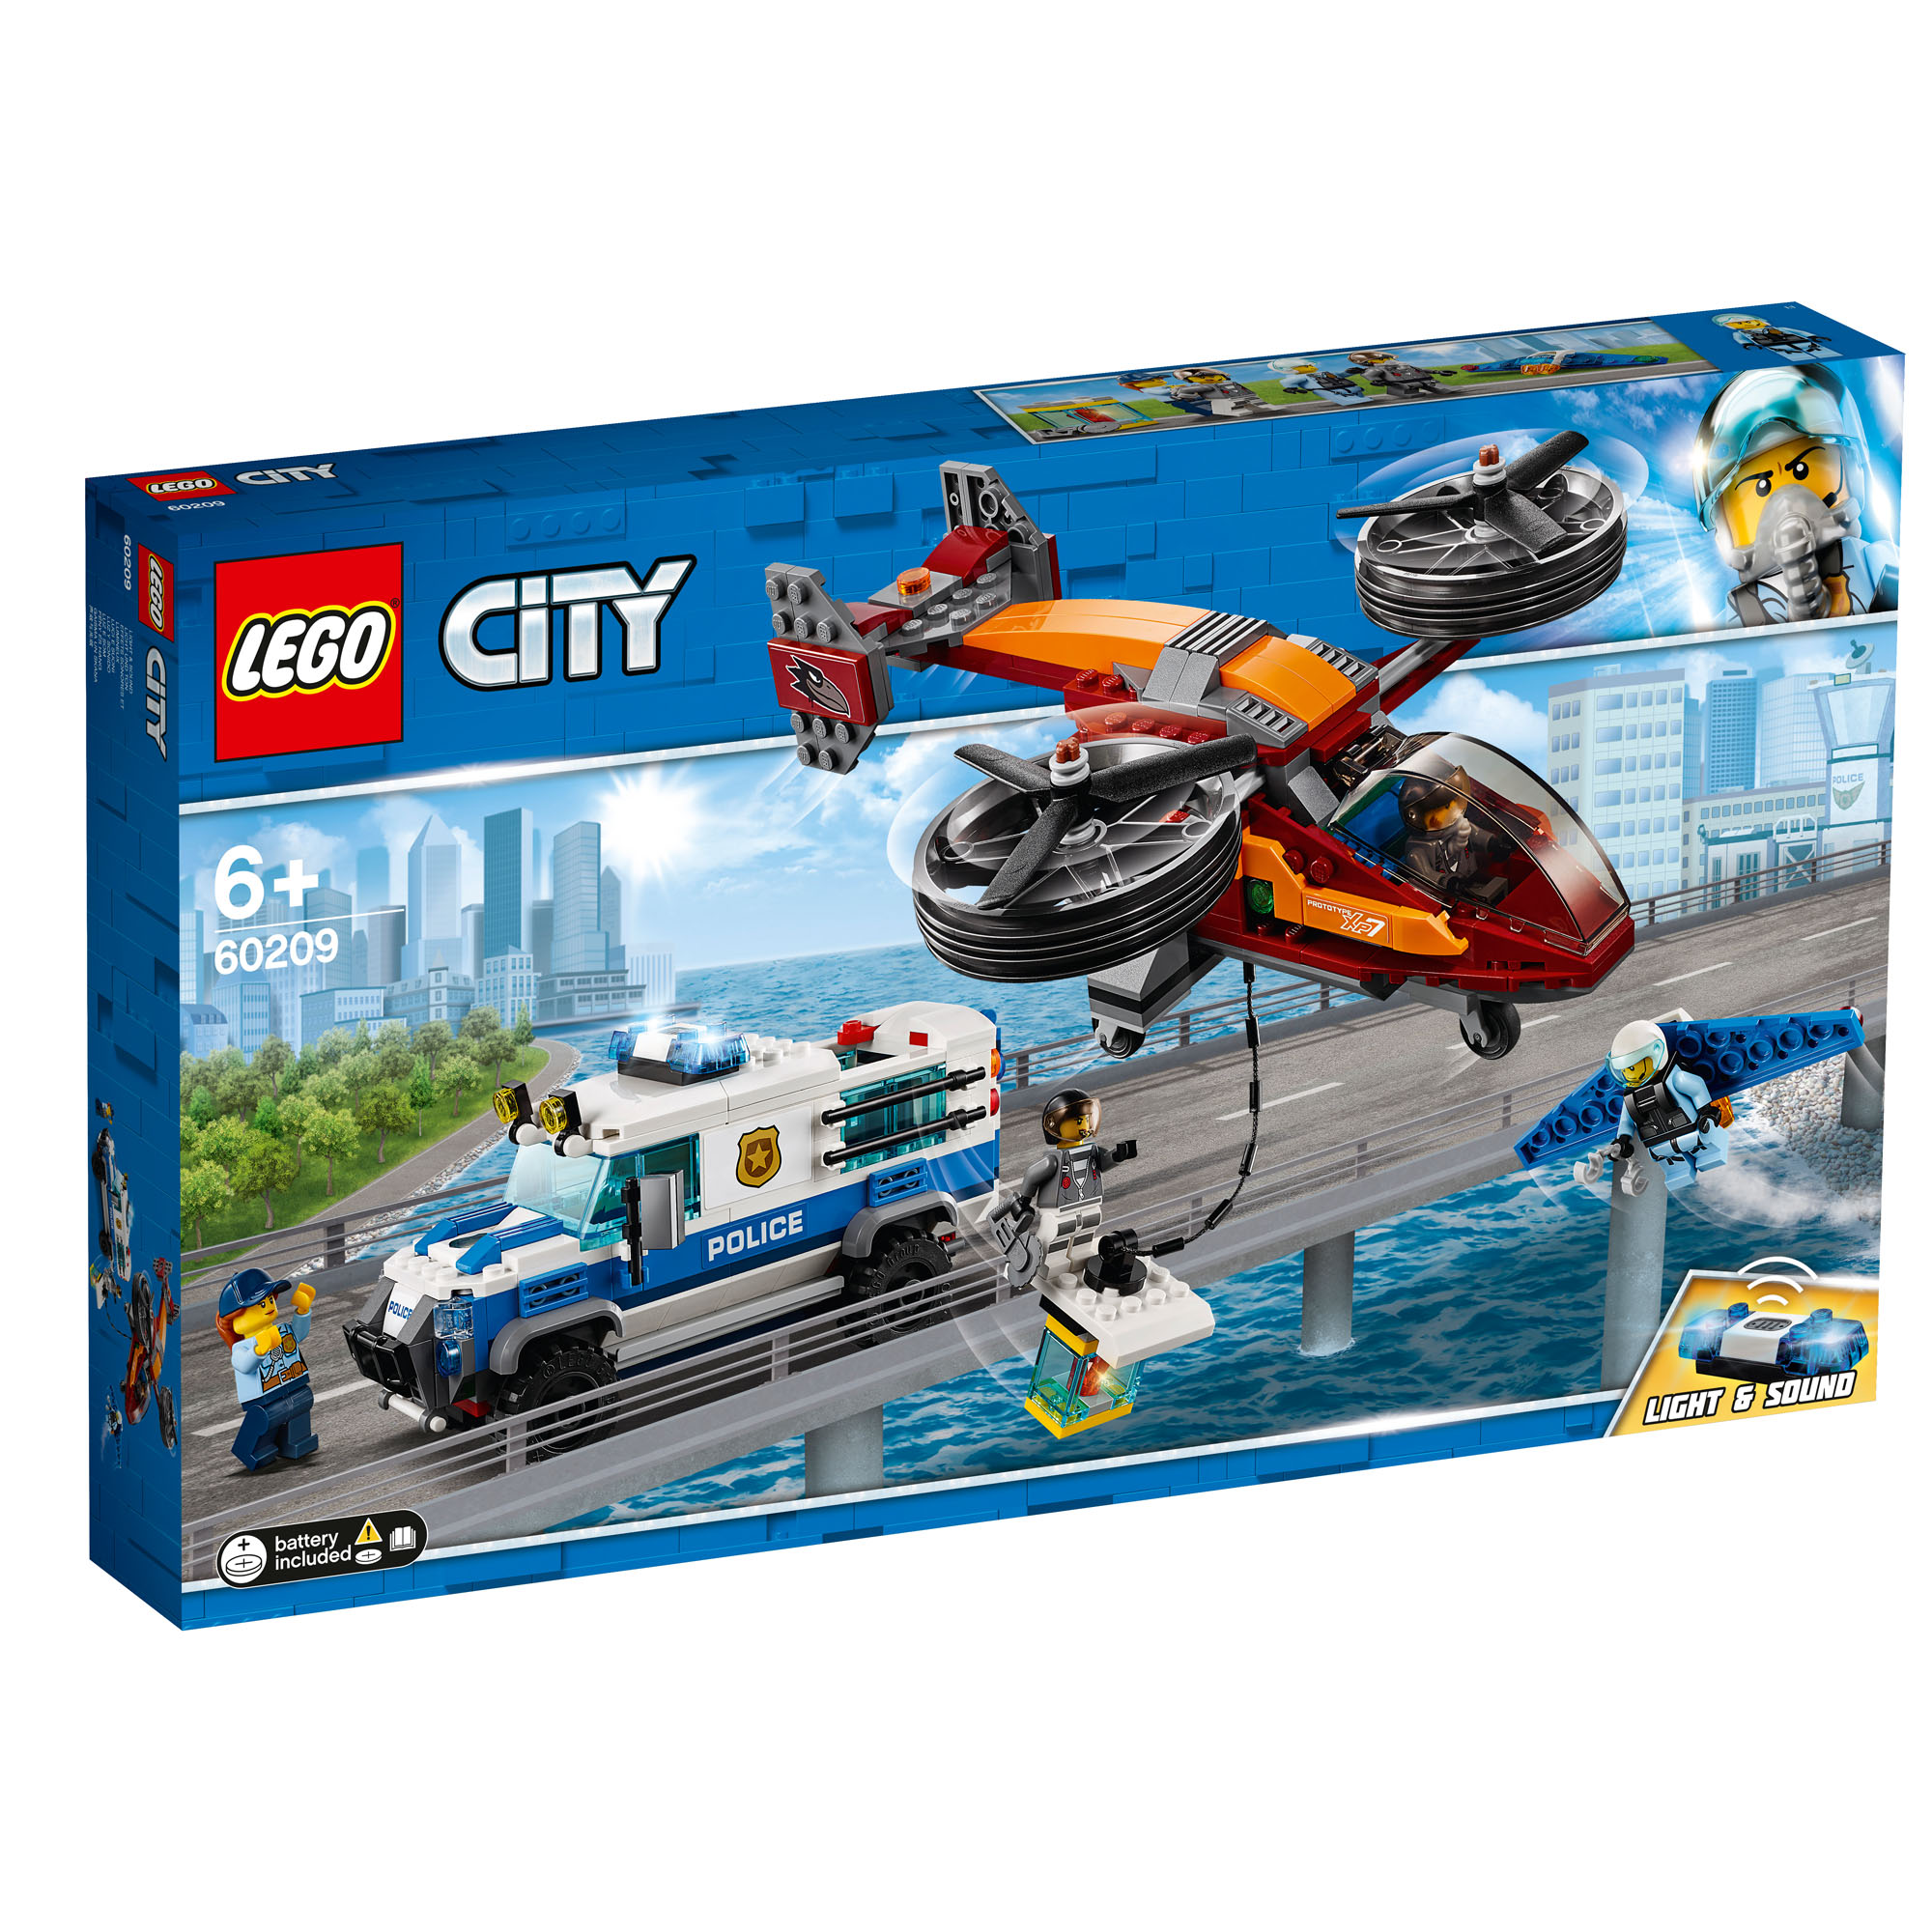 Details about 60209 LEGO CITY Sky Police Diamond Heist 400 Pieces Age 6+  New Release for 2019!